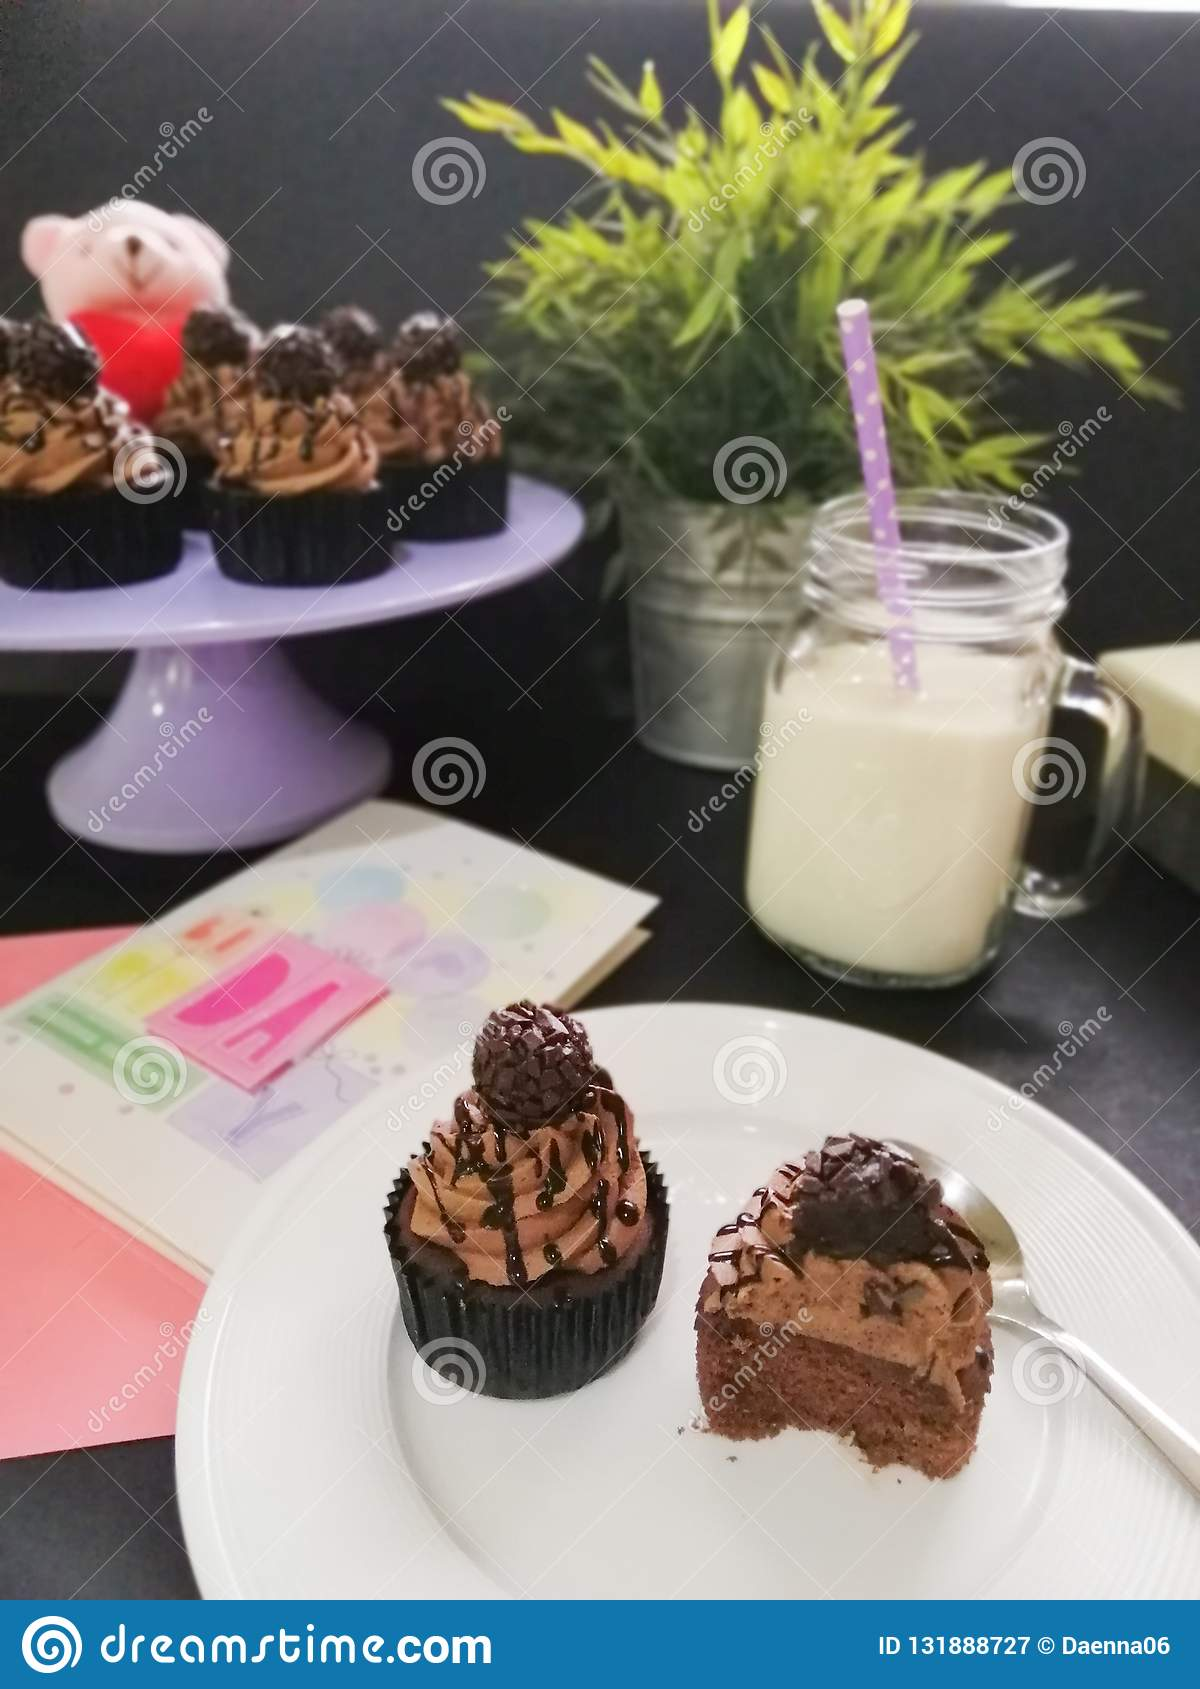 Picture Of Cupcakes With A Glass Milk And Birthday Card